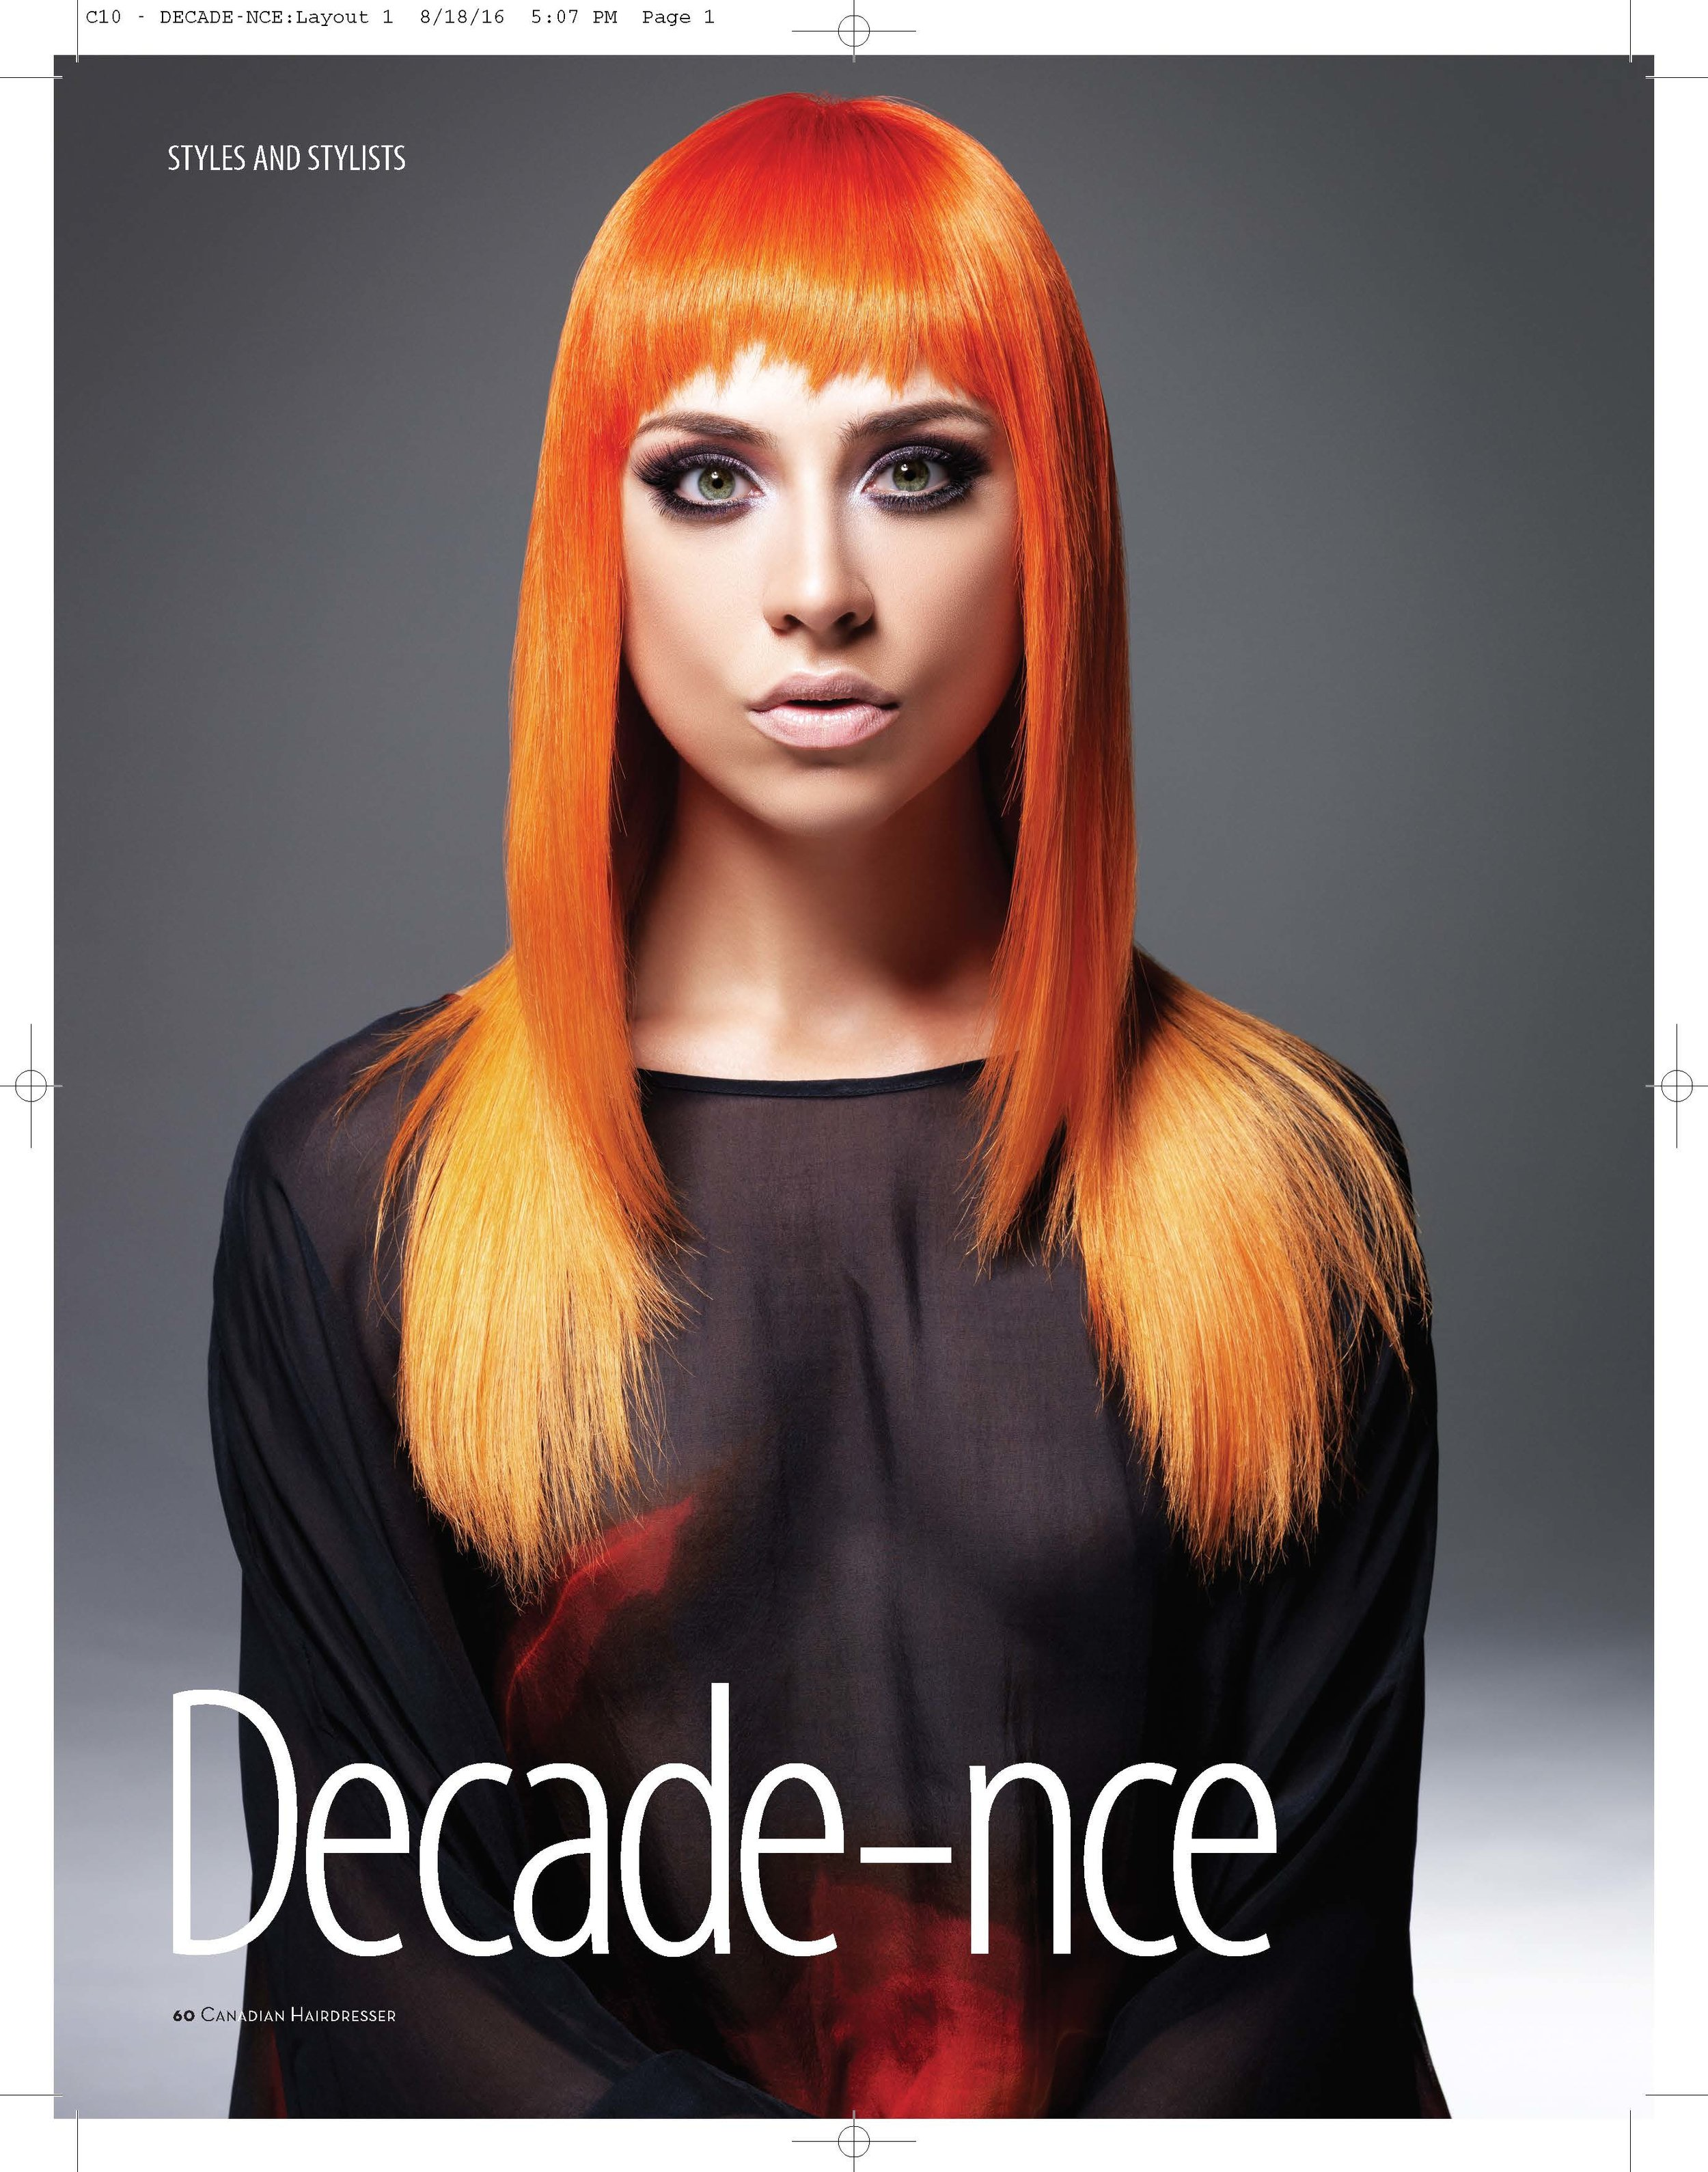 Canadian Hairdresser Magazine DECADE NCE_Page_1.jpg